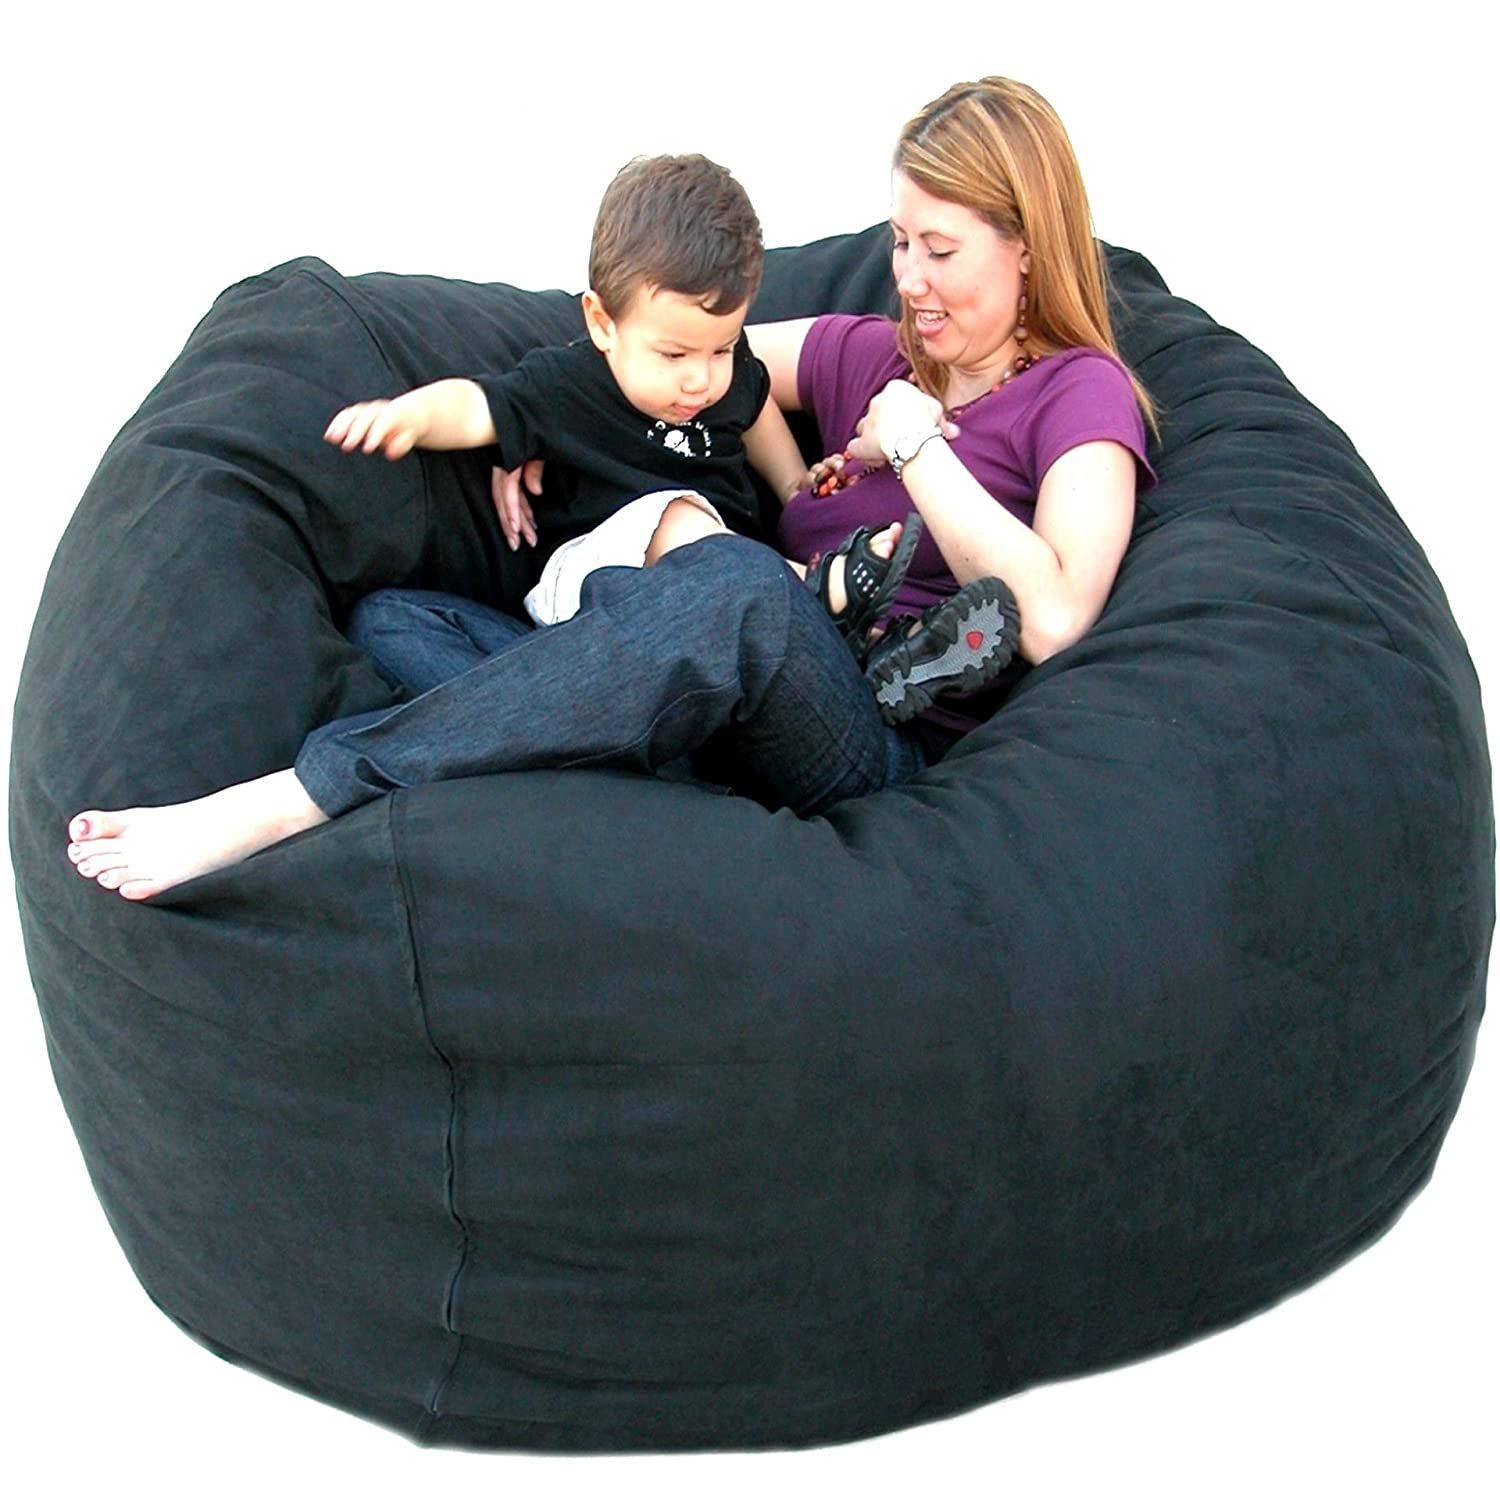 Exceptional Amazon.com: Cozy Sack 5 Feet Bean Bag Chair, Large, Black: Kitchen U0026 Dining